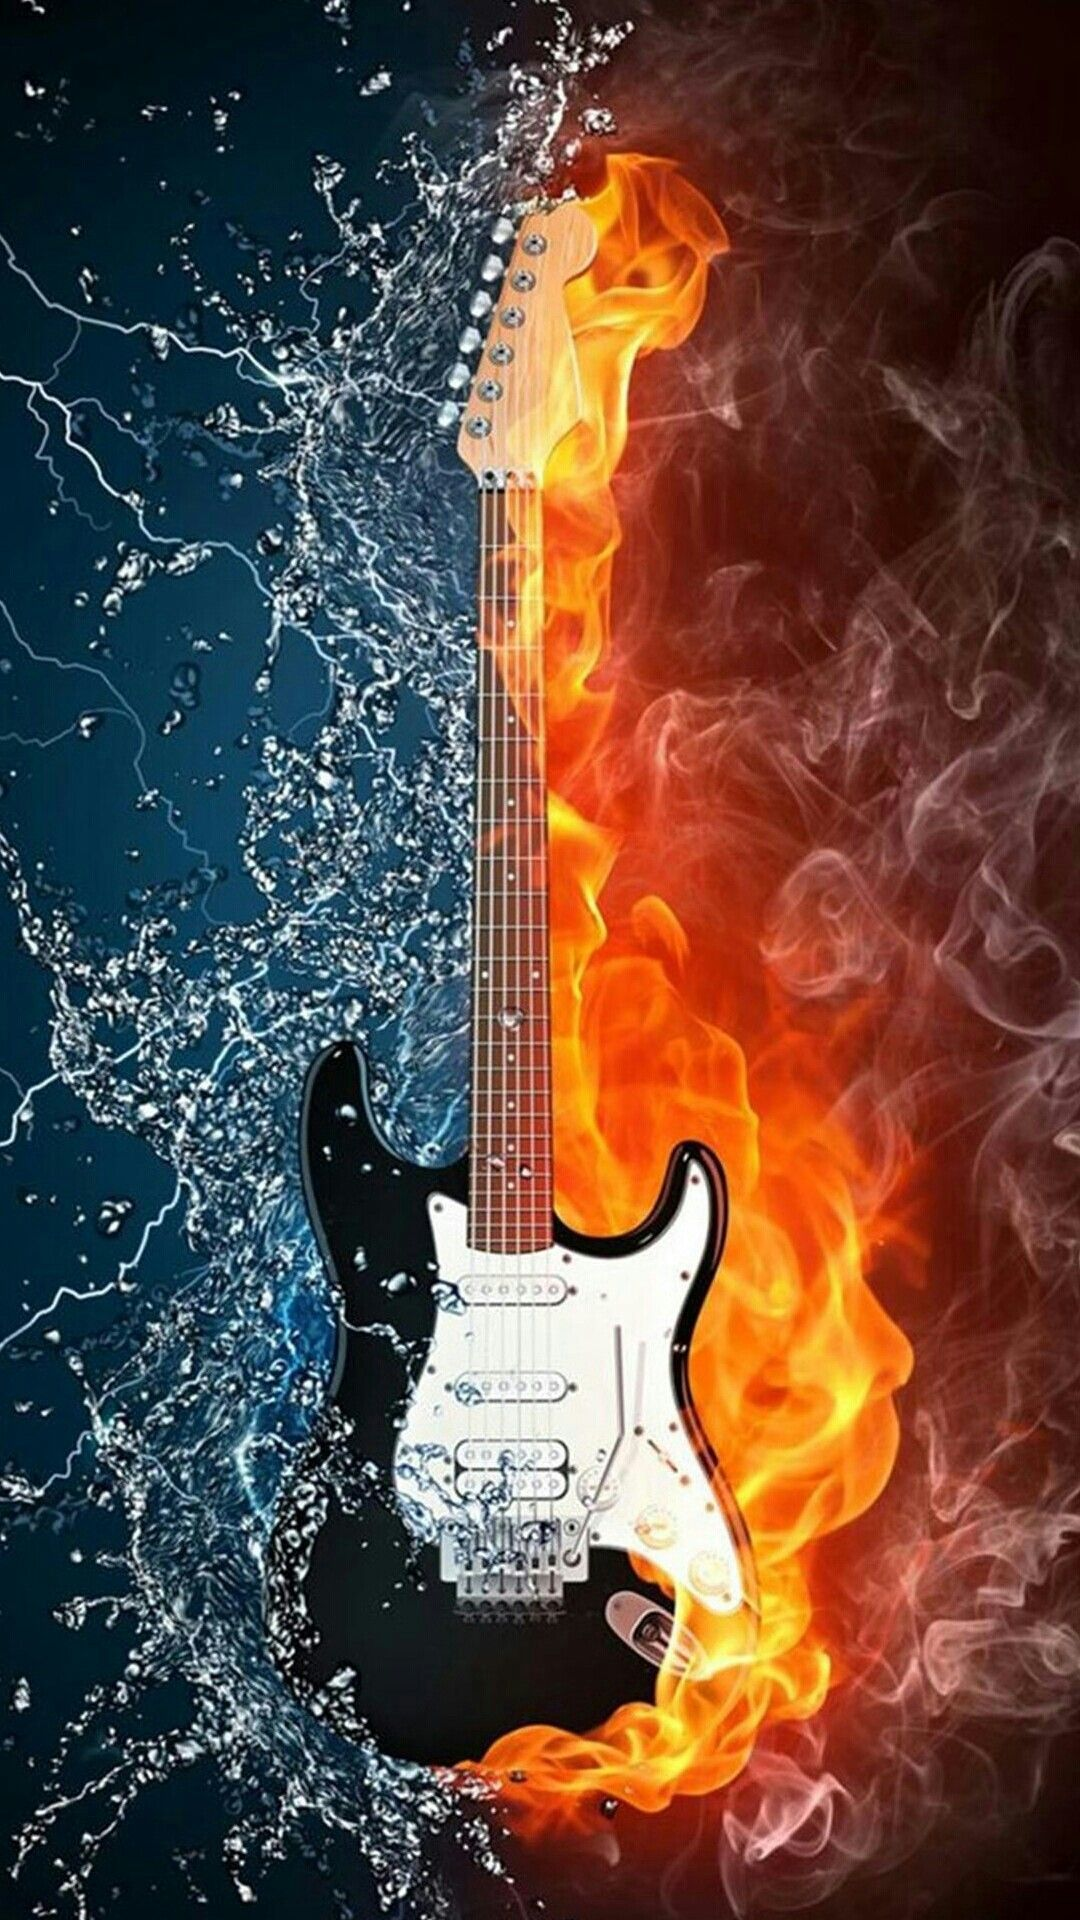 Pin By Willi On Cell Phone Backgrounds Fondo De Celular Cool Wallpapers For Phones Music Wallpaper Guitar Wallpaper Iphone Guitar mobile wallpaper hd